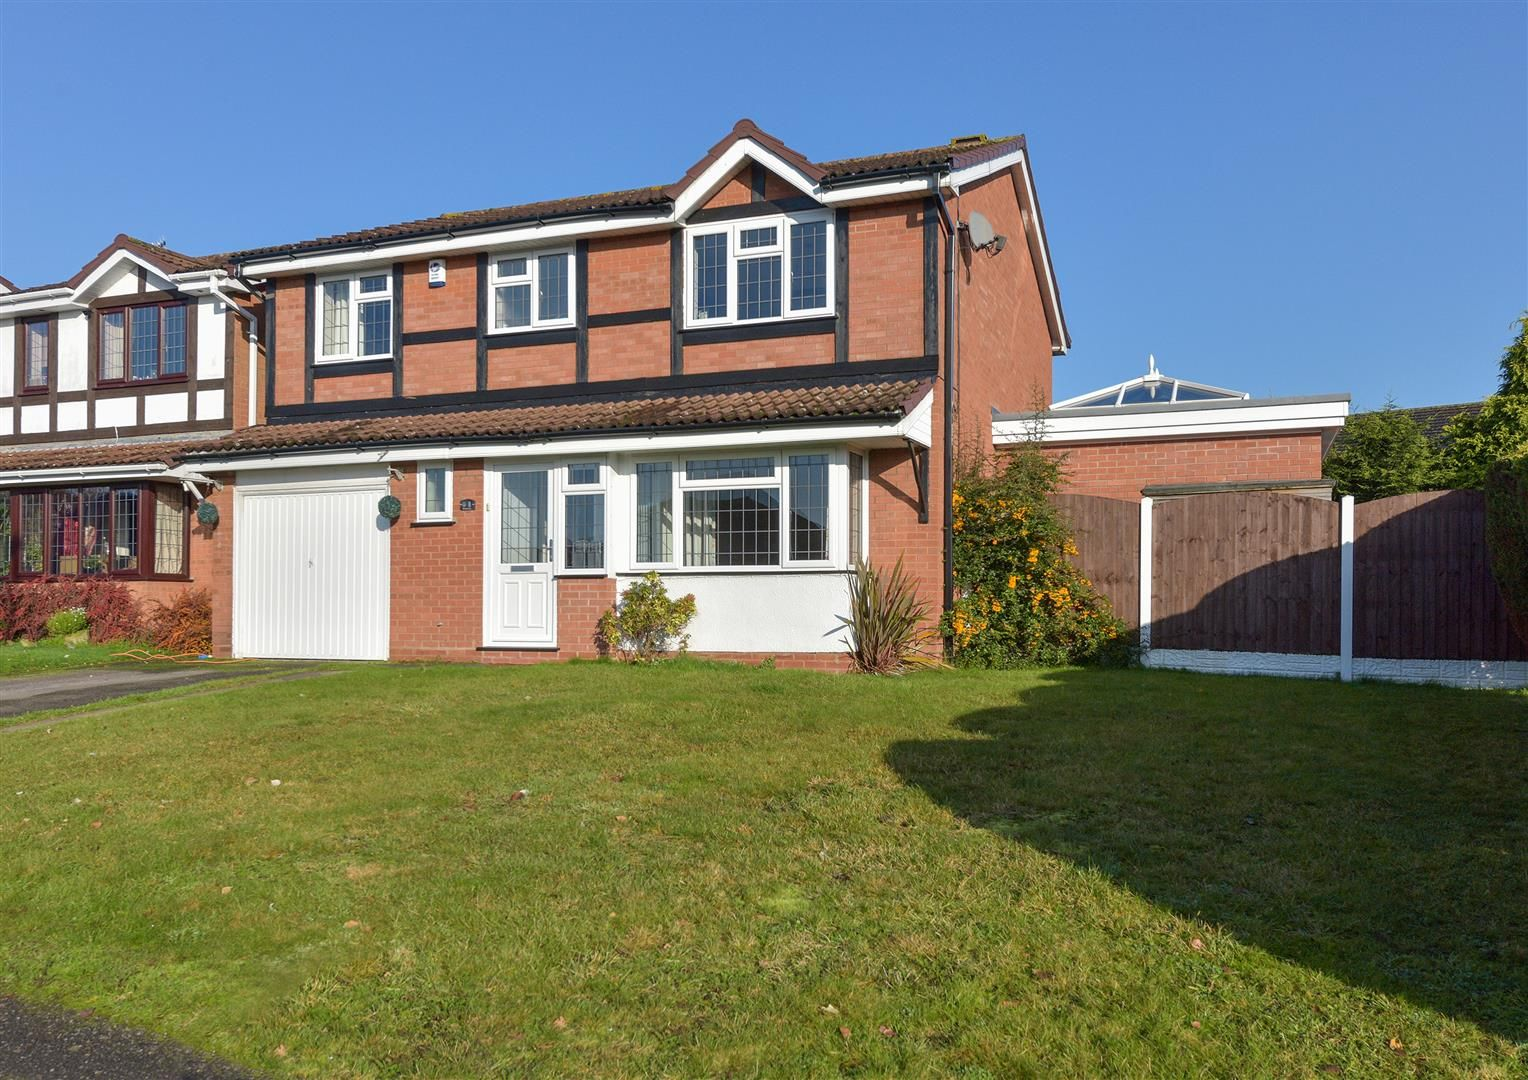 4 bed detached for sale, DY5